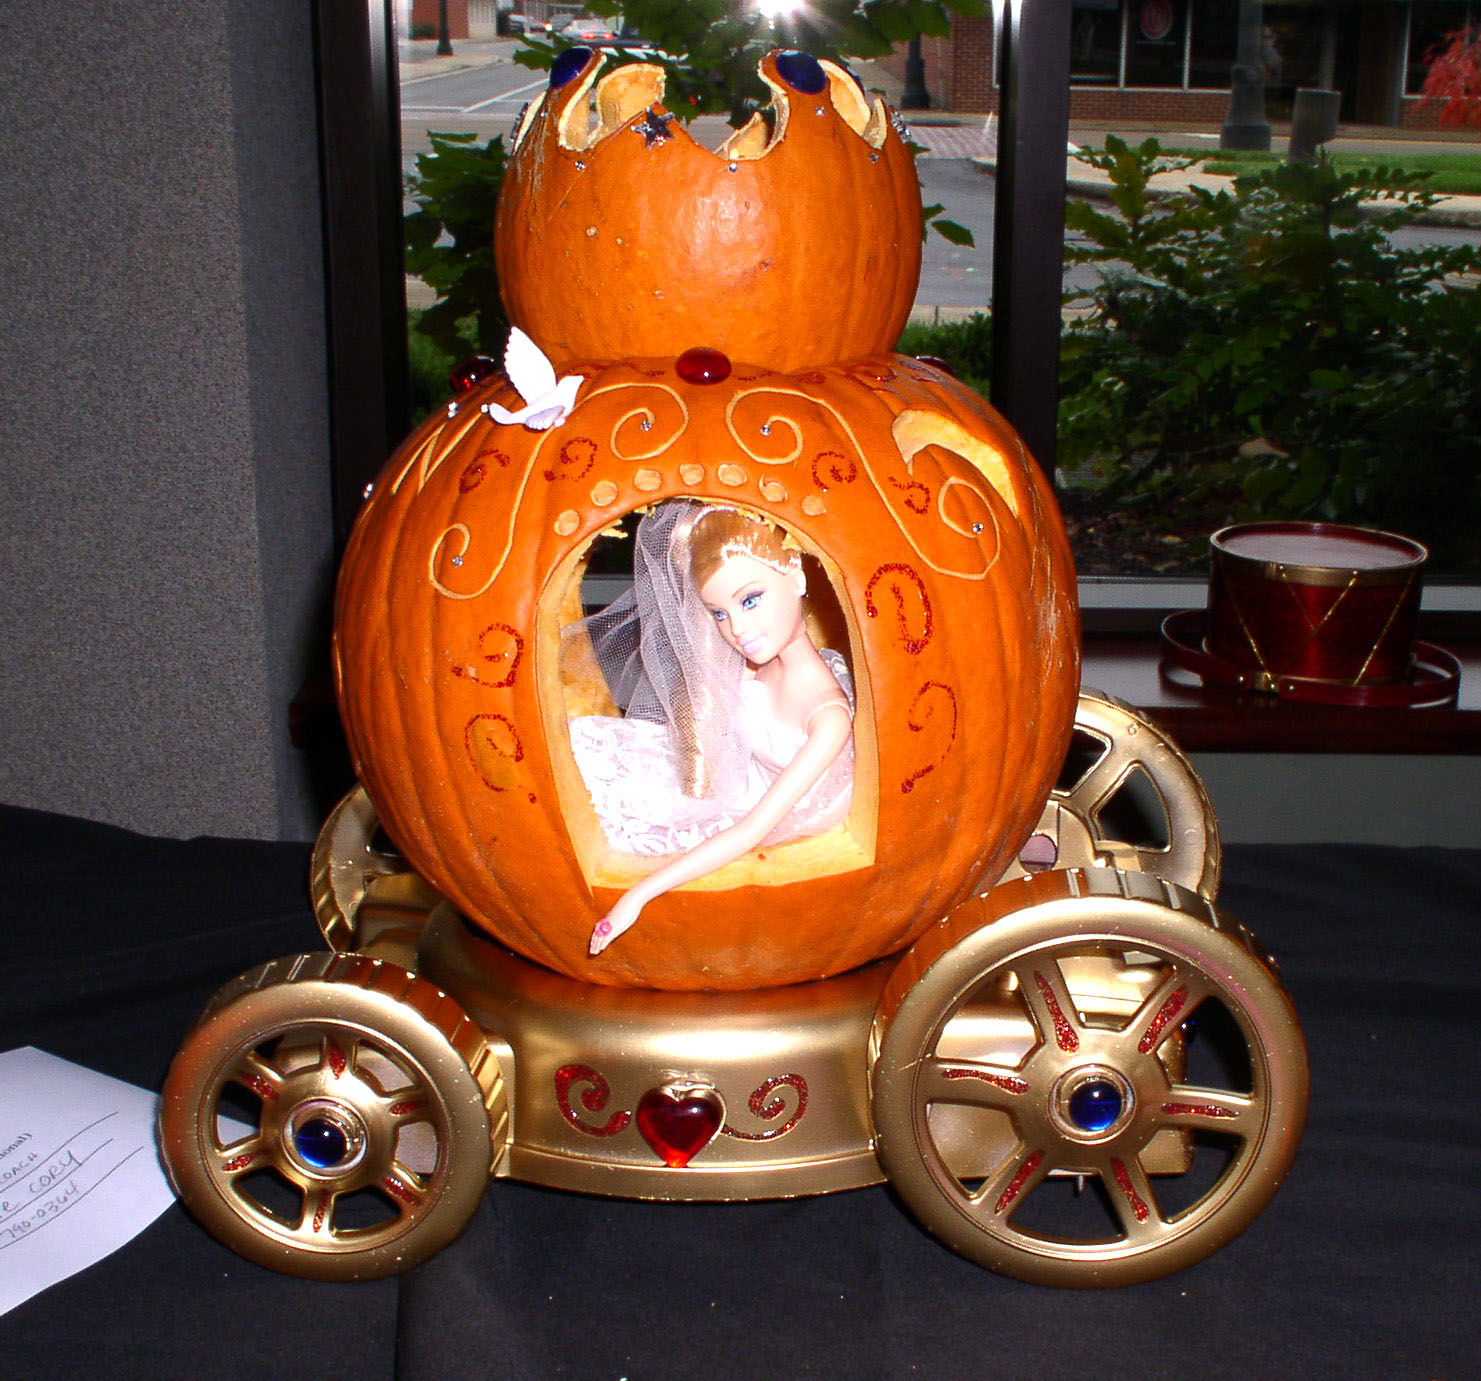 Museum Center at 5ive Points to Host Sixth Annual Pumpkin Carving Contest |  Around and About Chattanooga